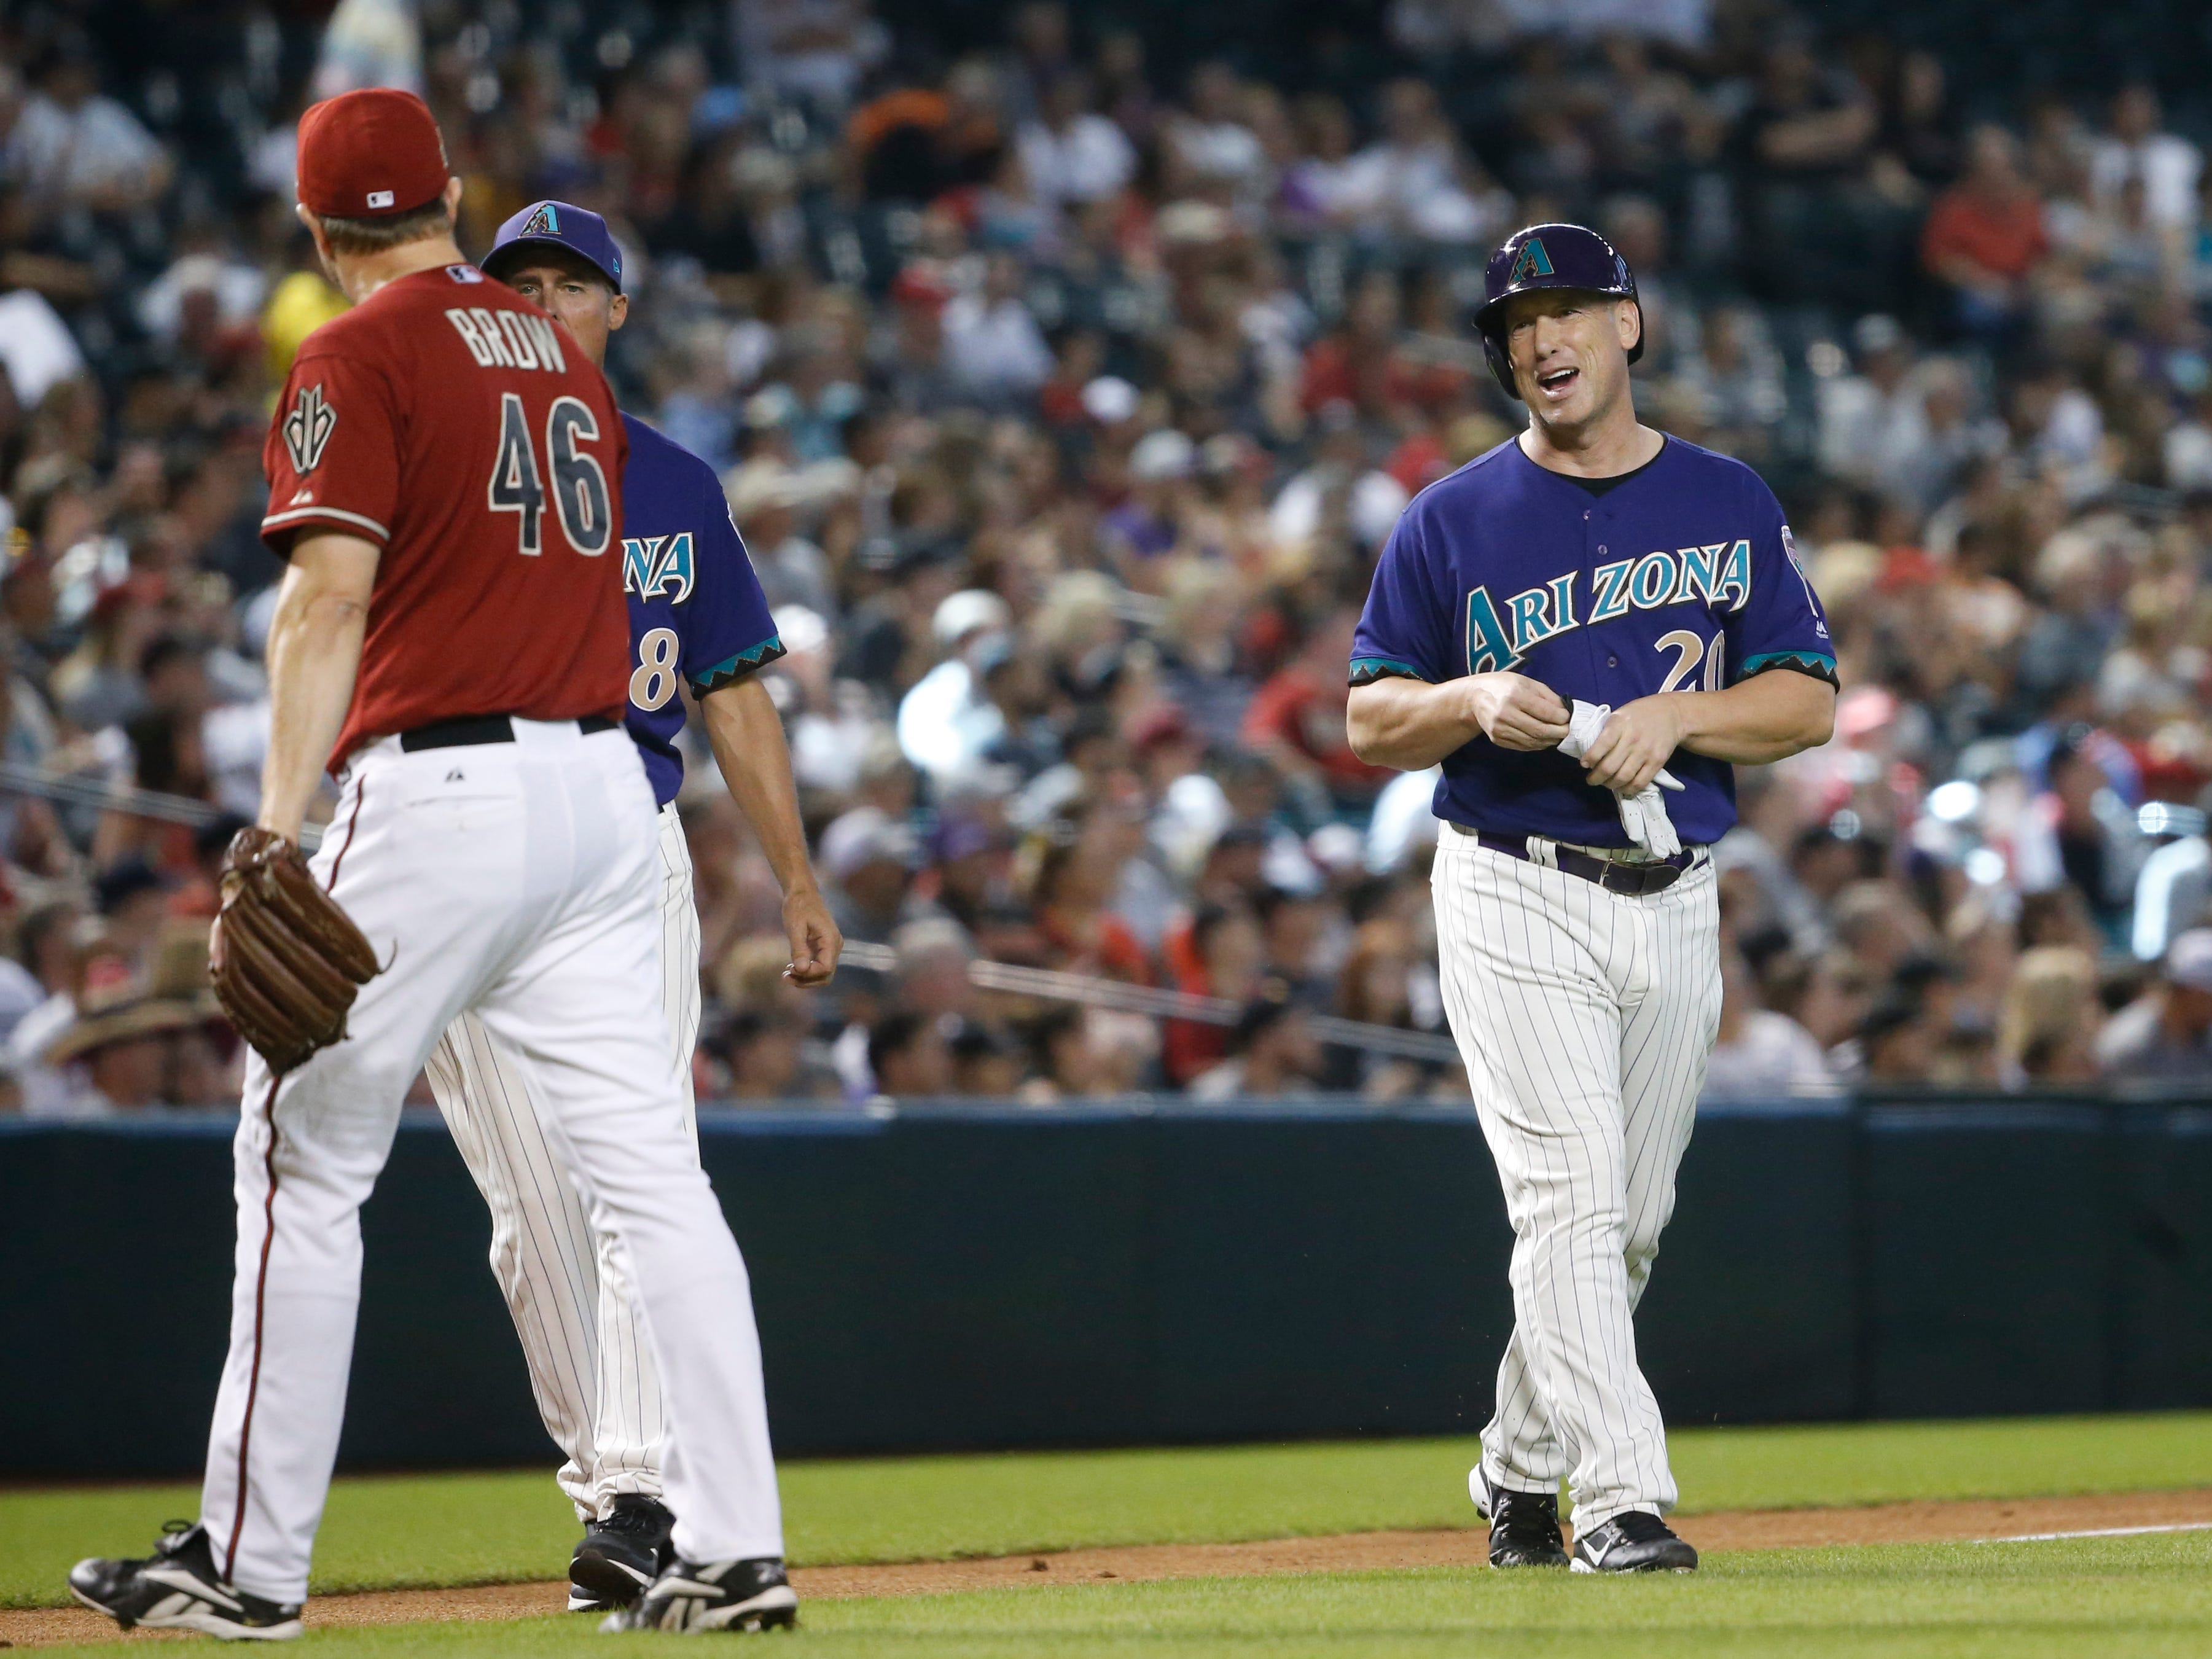 Diamondbacks Purple team's Luis Gonzalez (20) jokes with Red team's Scott Brow (46) during the Generations Diamondbacks Alumni game at Chase Field in Phoenix, Ariz. on Aug. 4, 2018.